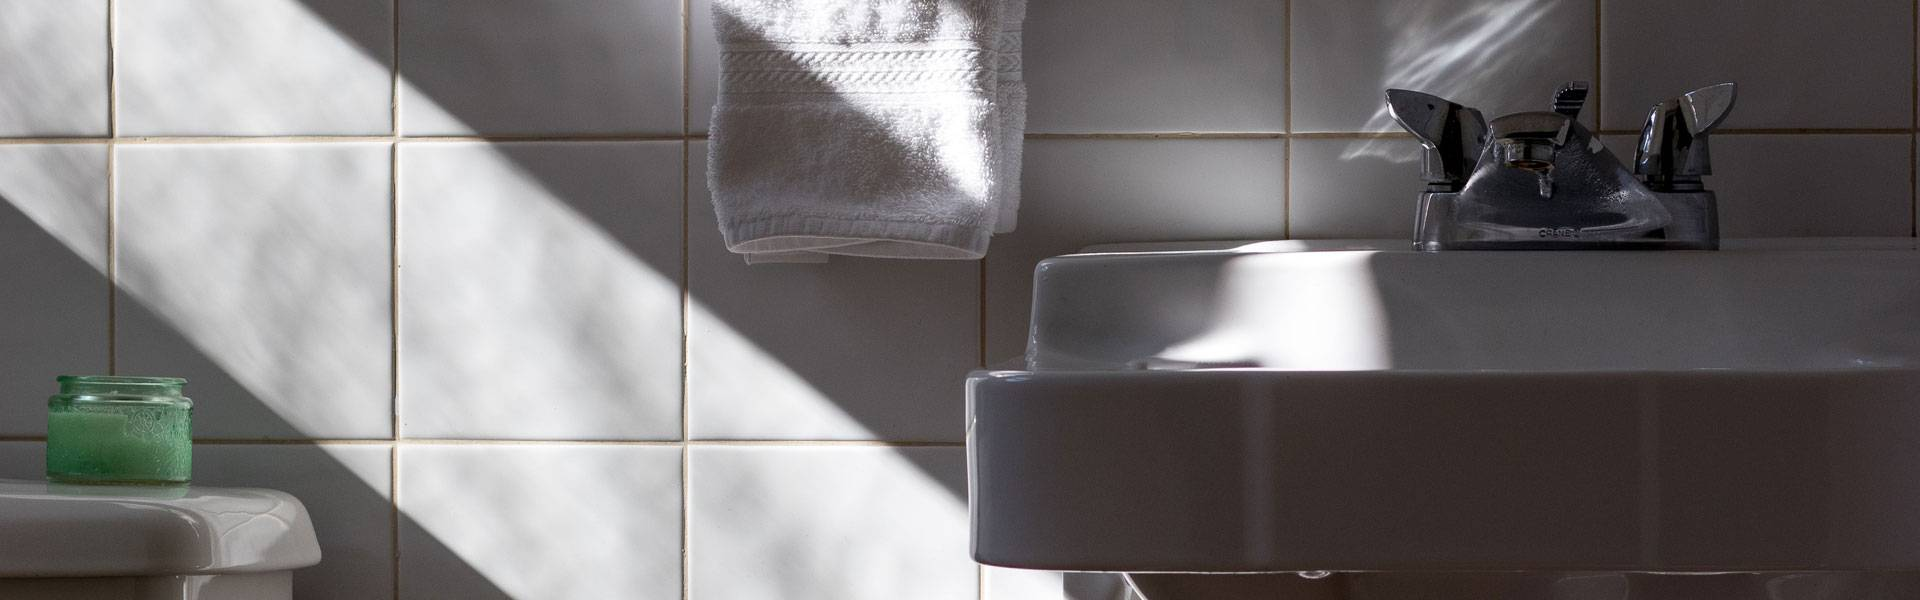 close up of white porcelain tiles behind a white cotton towl and bathroom sink